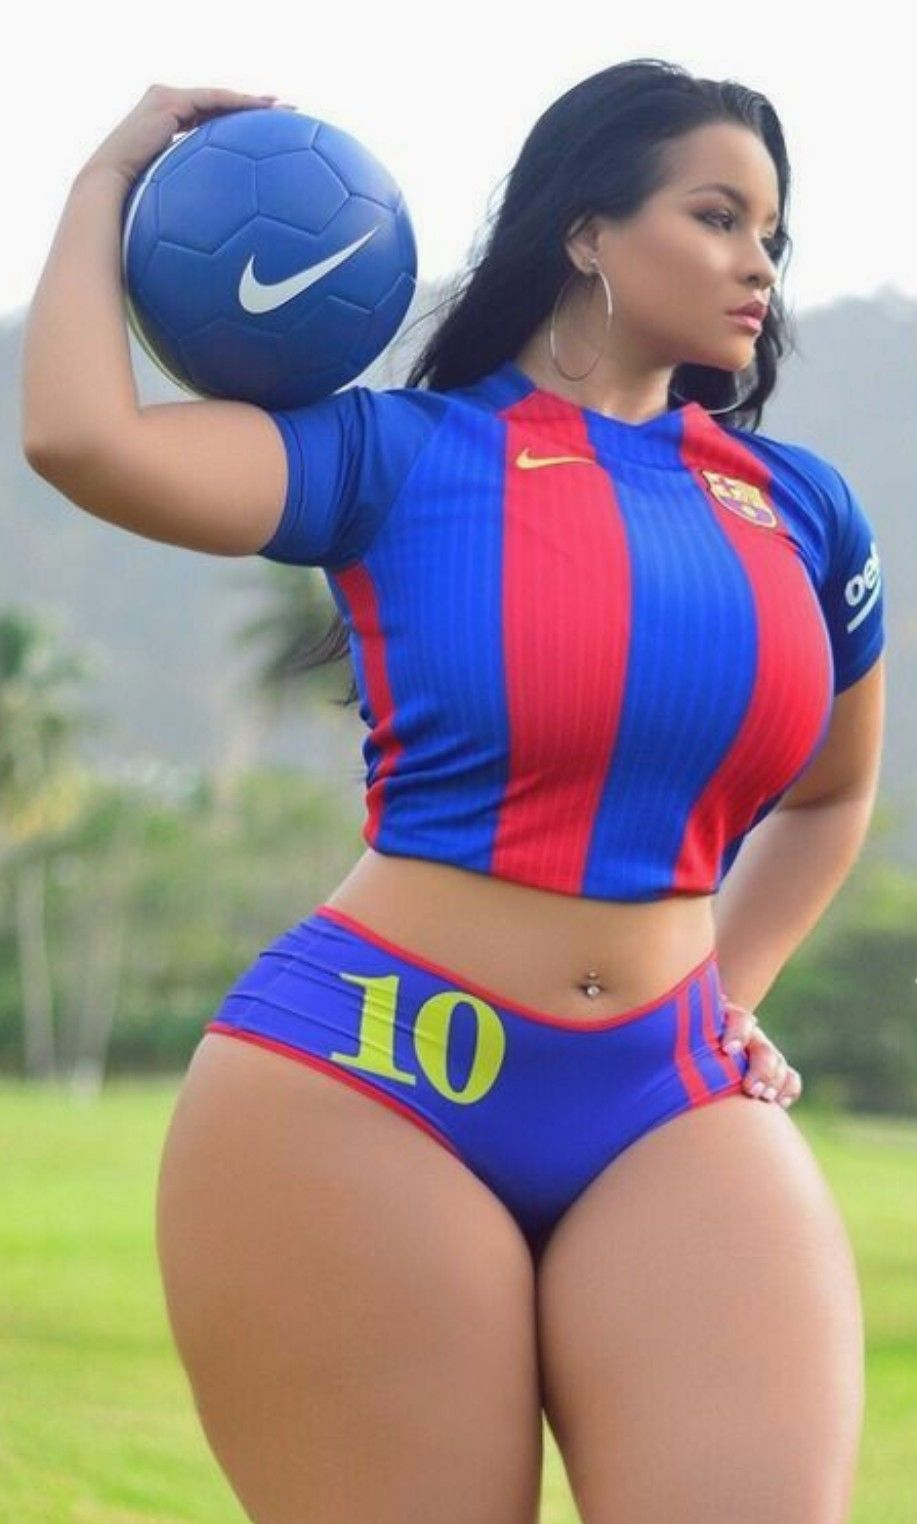 curvy latina girls